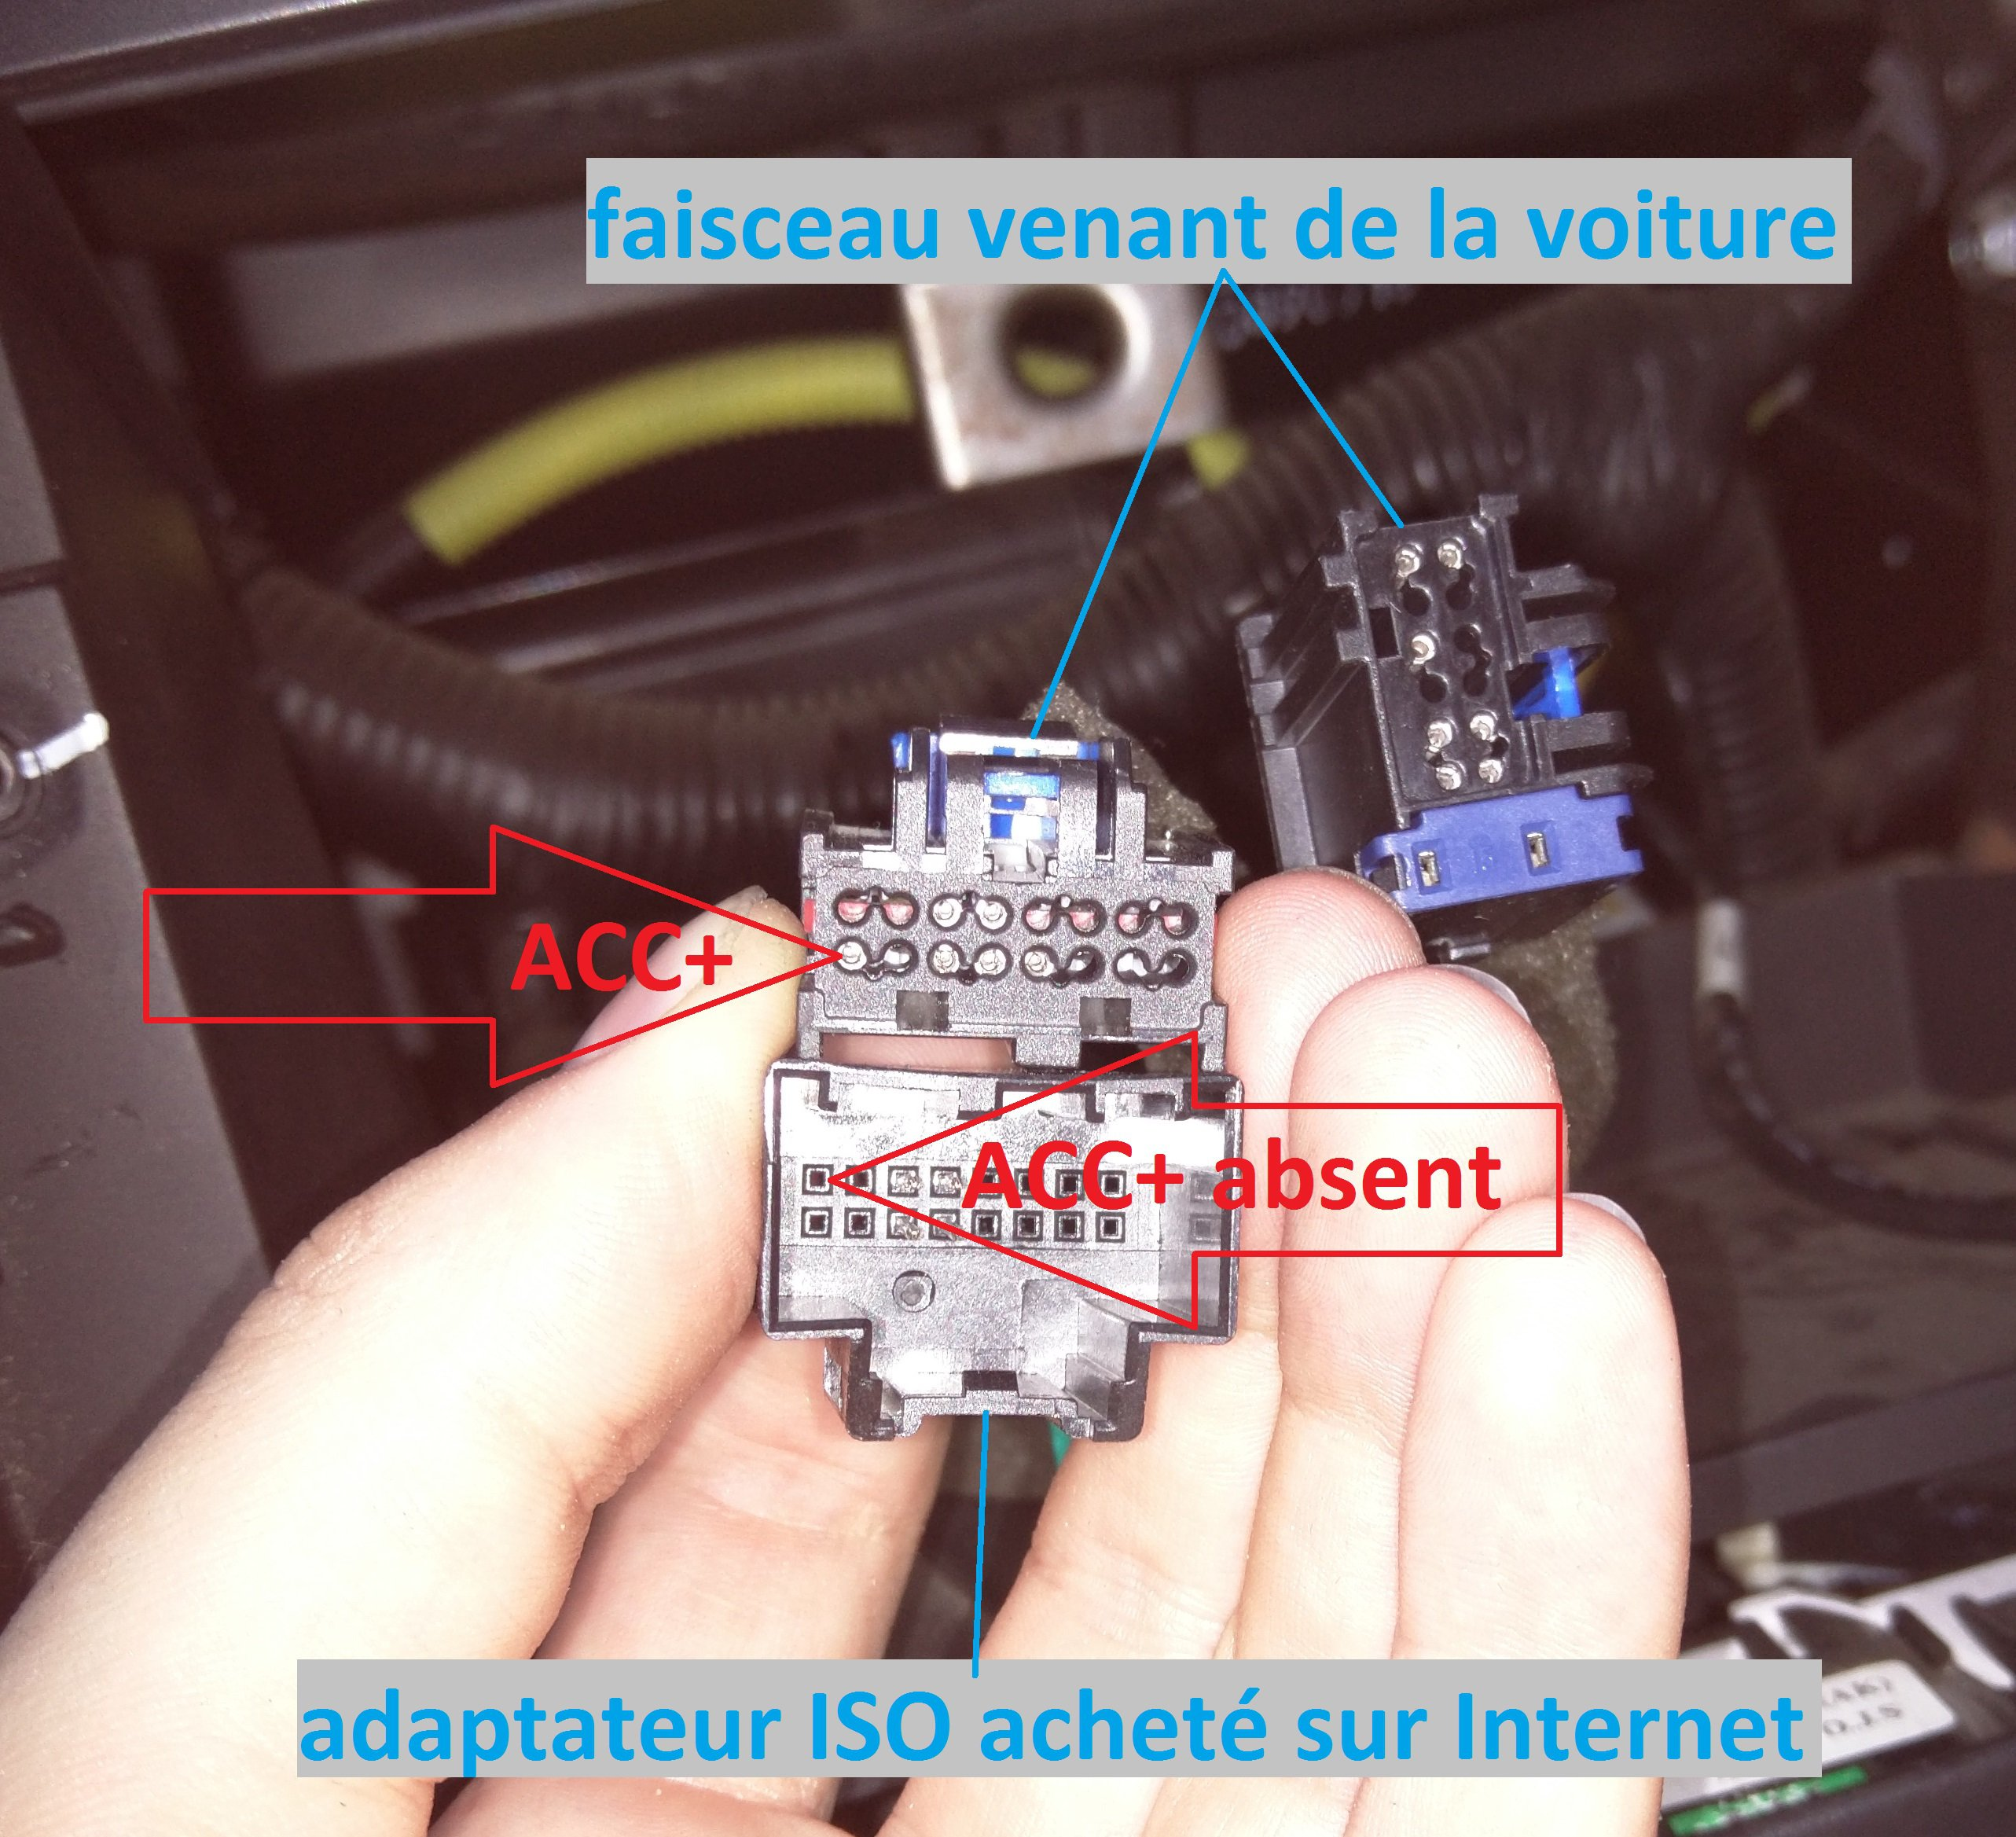 ACC+ absent adaptateur ISO